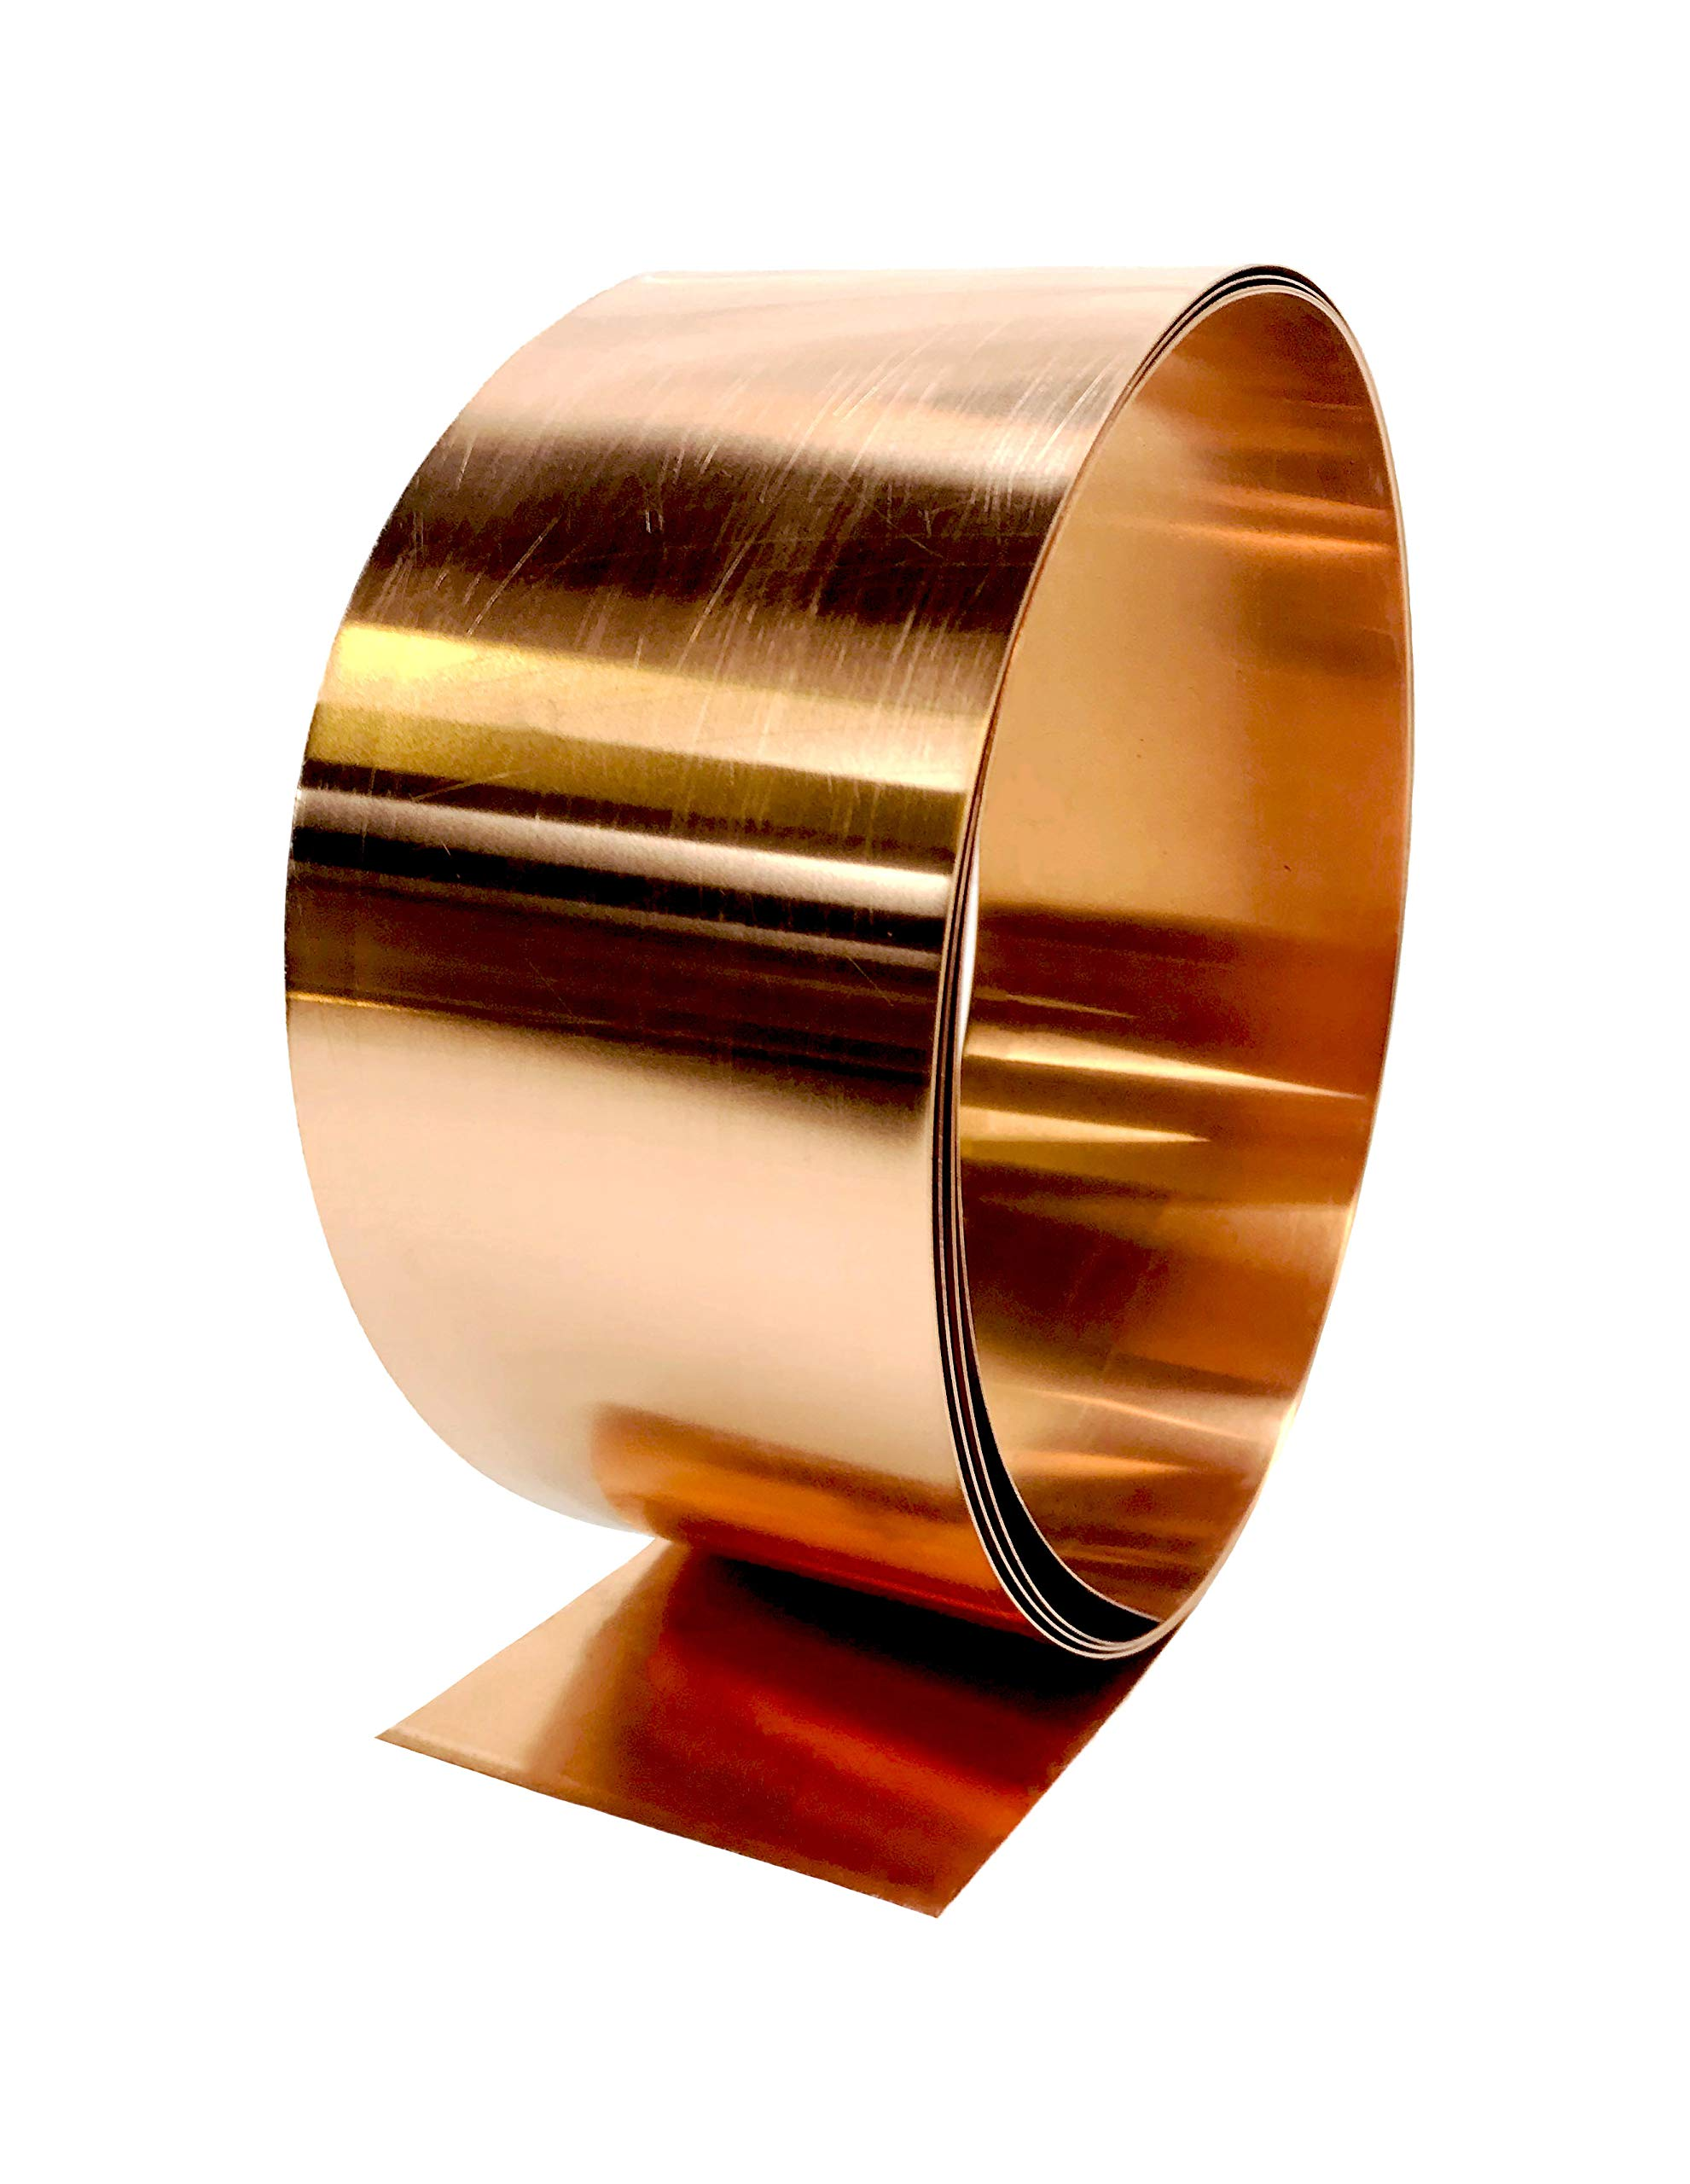 Copper Flashing - 16 oz 24 Gauge 10' Rolls in Various Widths for Roofing, DIY, or Contractor use-Lead Free Copper - can be Used with Pressure Treated Lumber (8'' Width) by Flashing Kings